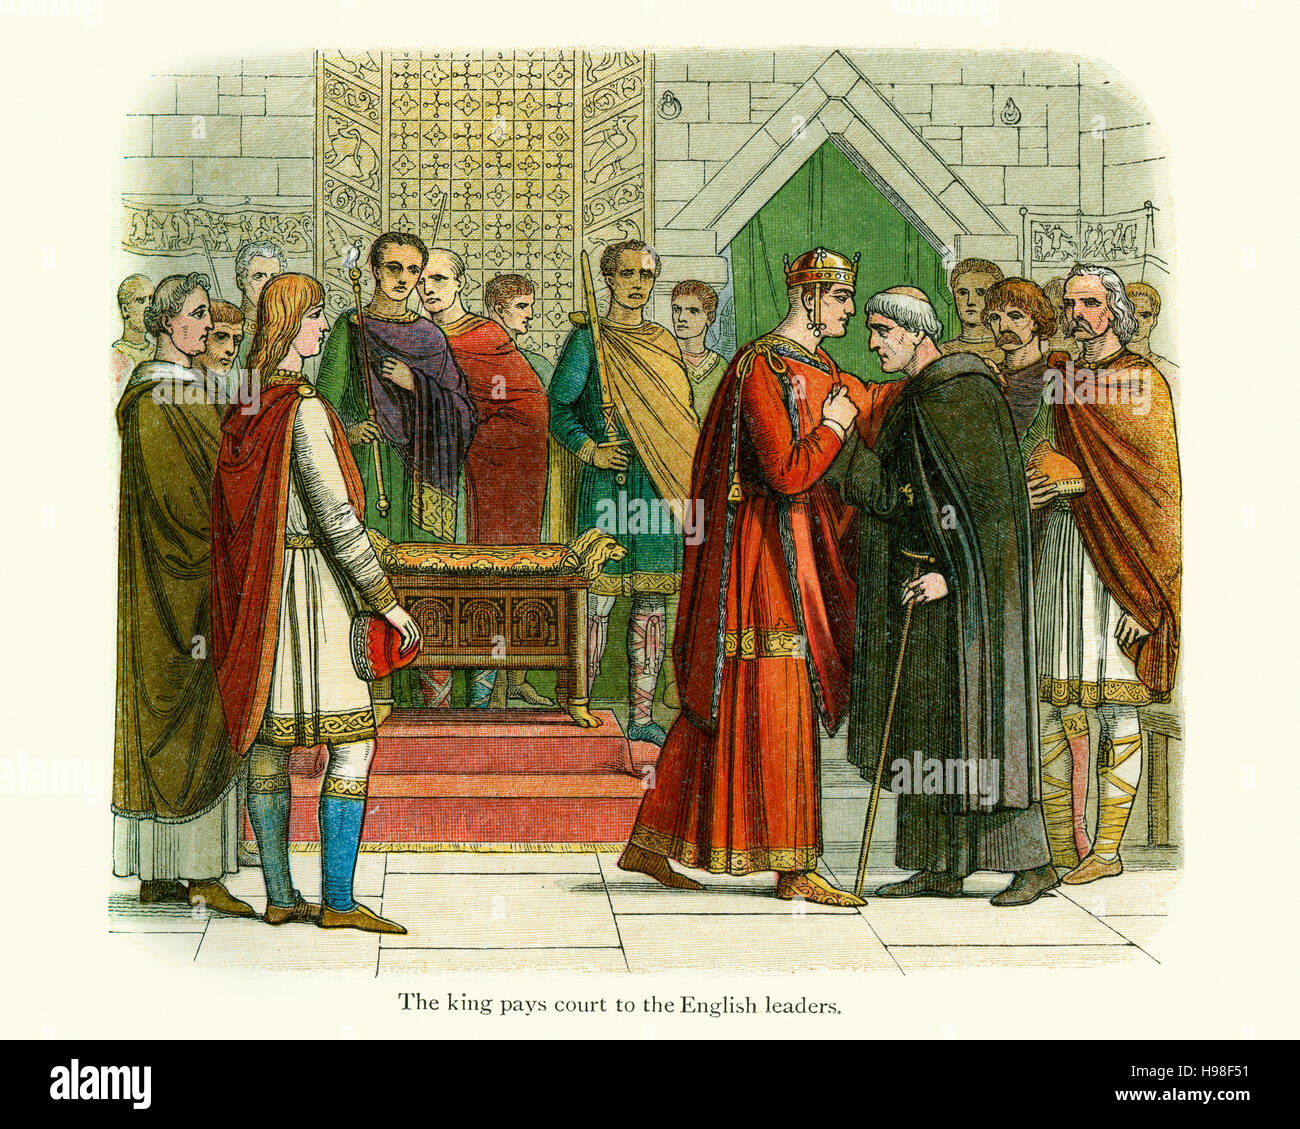 King William The Conqueror and the Leaders of the English. - Stock Image